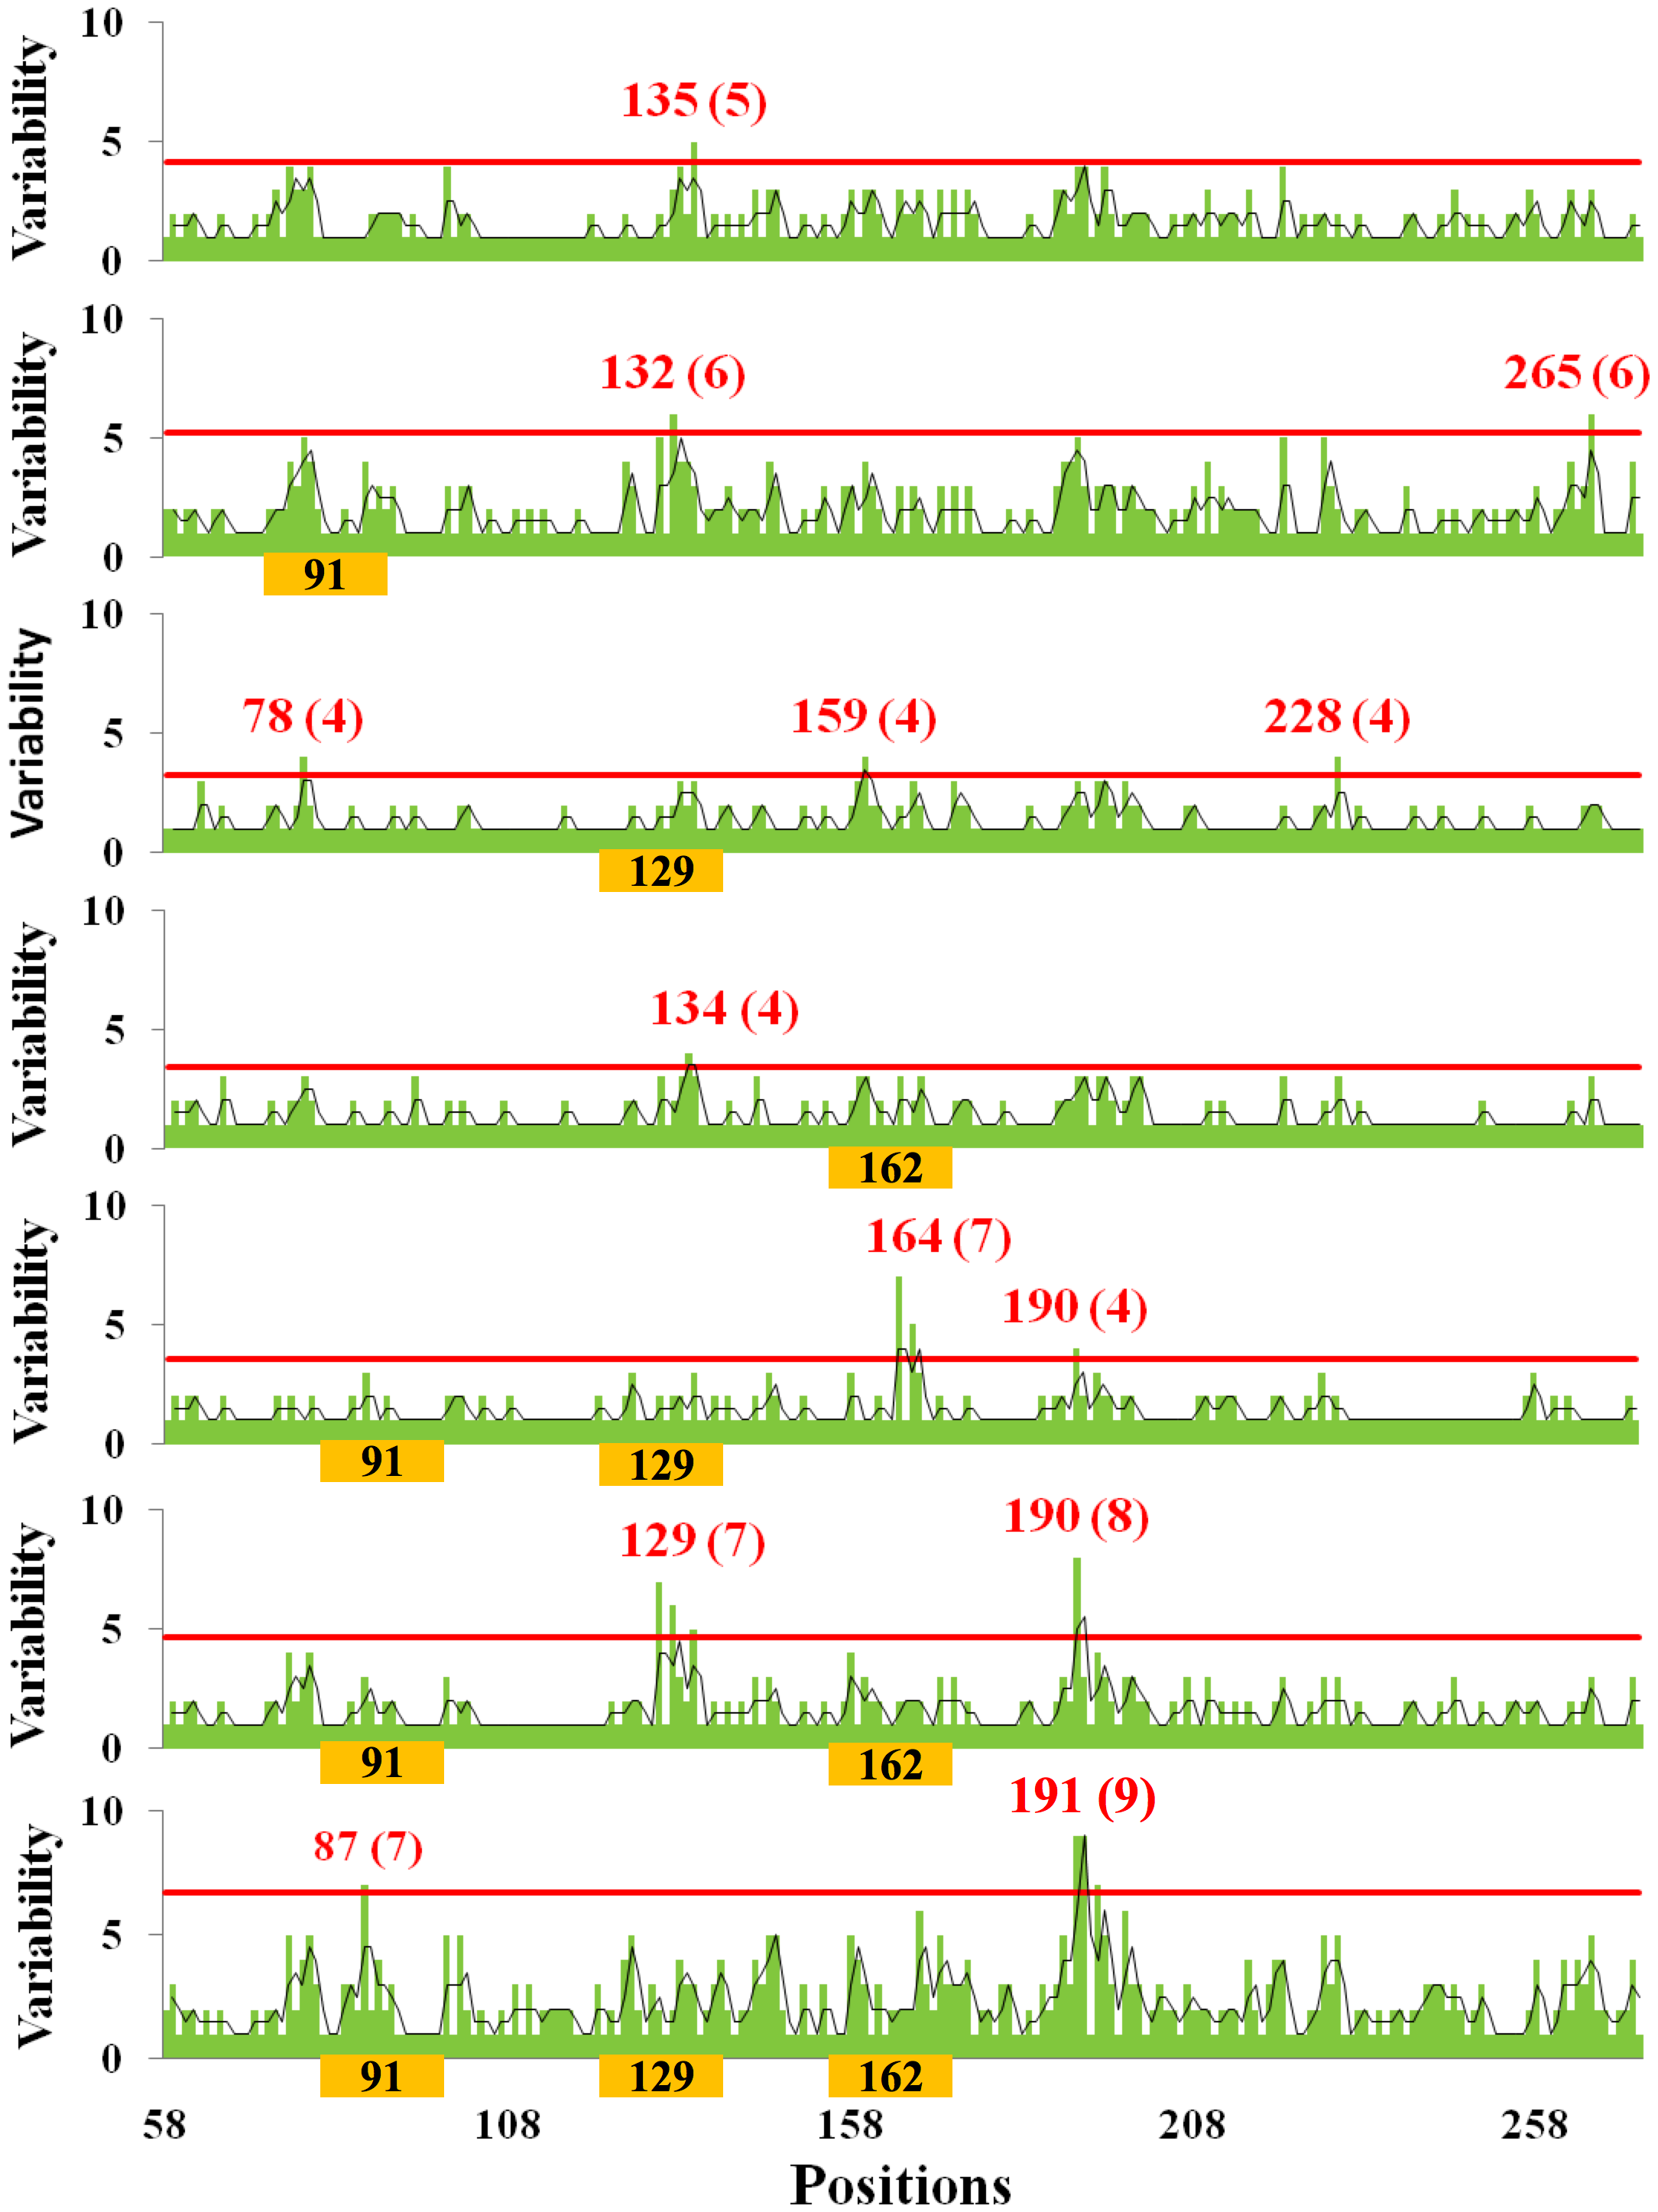 Relationship between amino acid variability and presence of glycosylation sites in H1 globular domain.